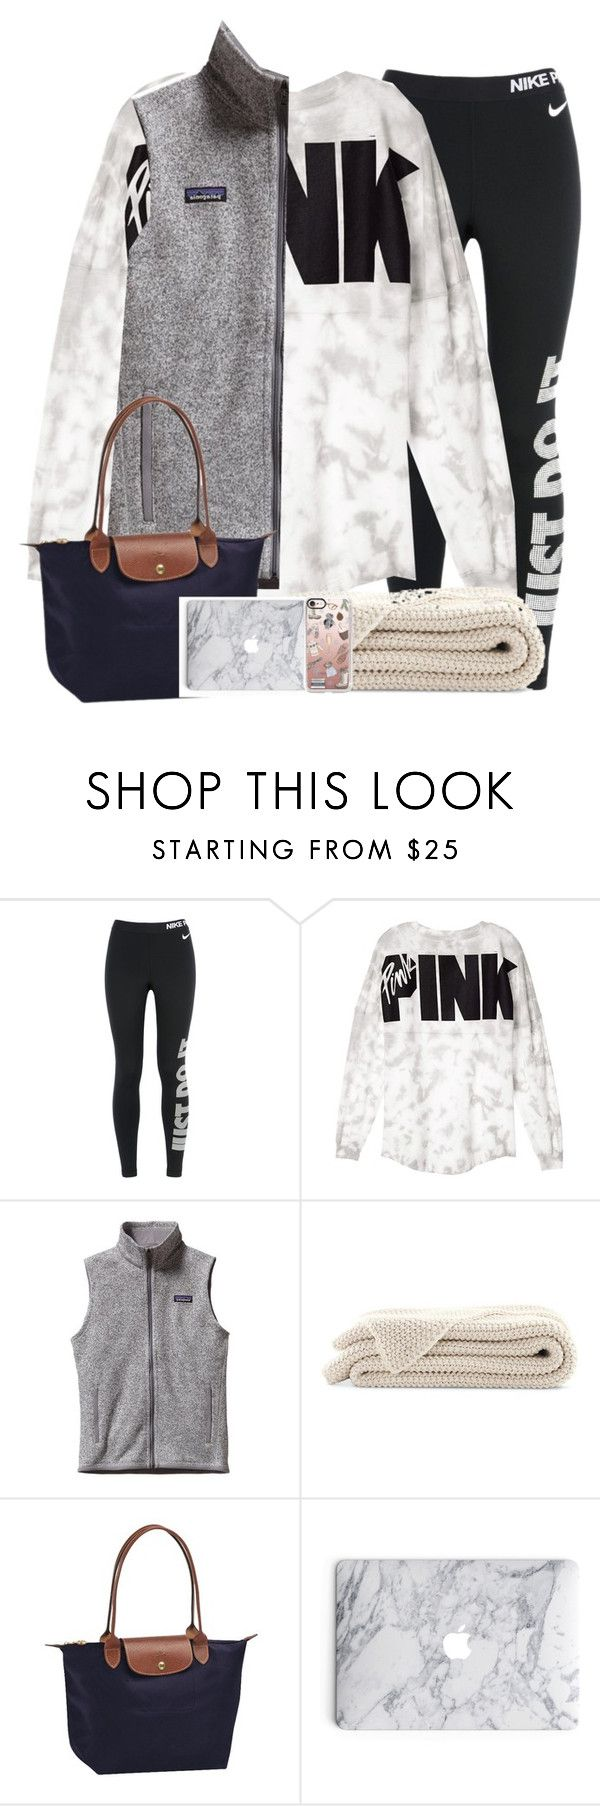 """""""rtd!"""" by simplesouthernlife01 ❤ liked on Polyvore featuring NIKE, Victoria's Secret, Patagonia, Longchamp and Casetify"""